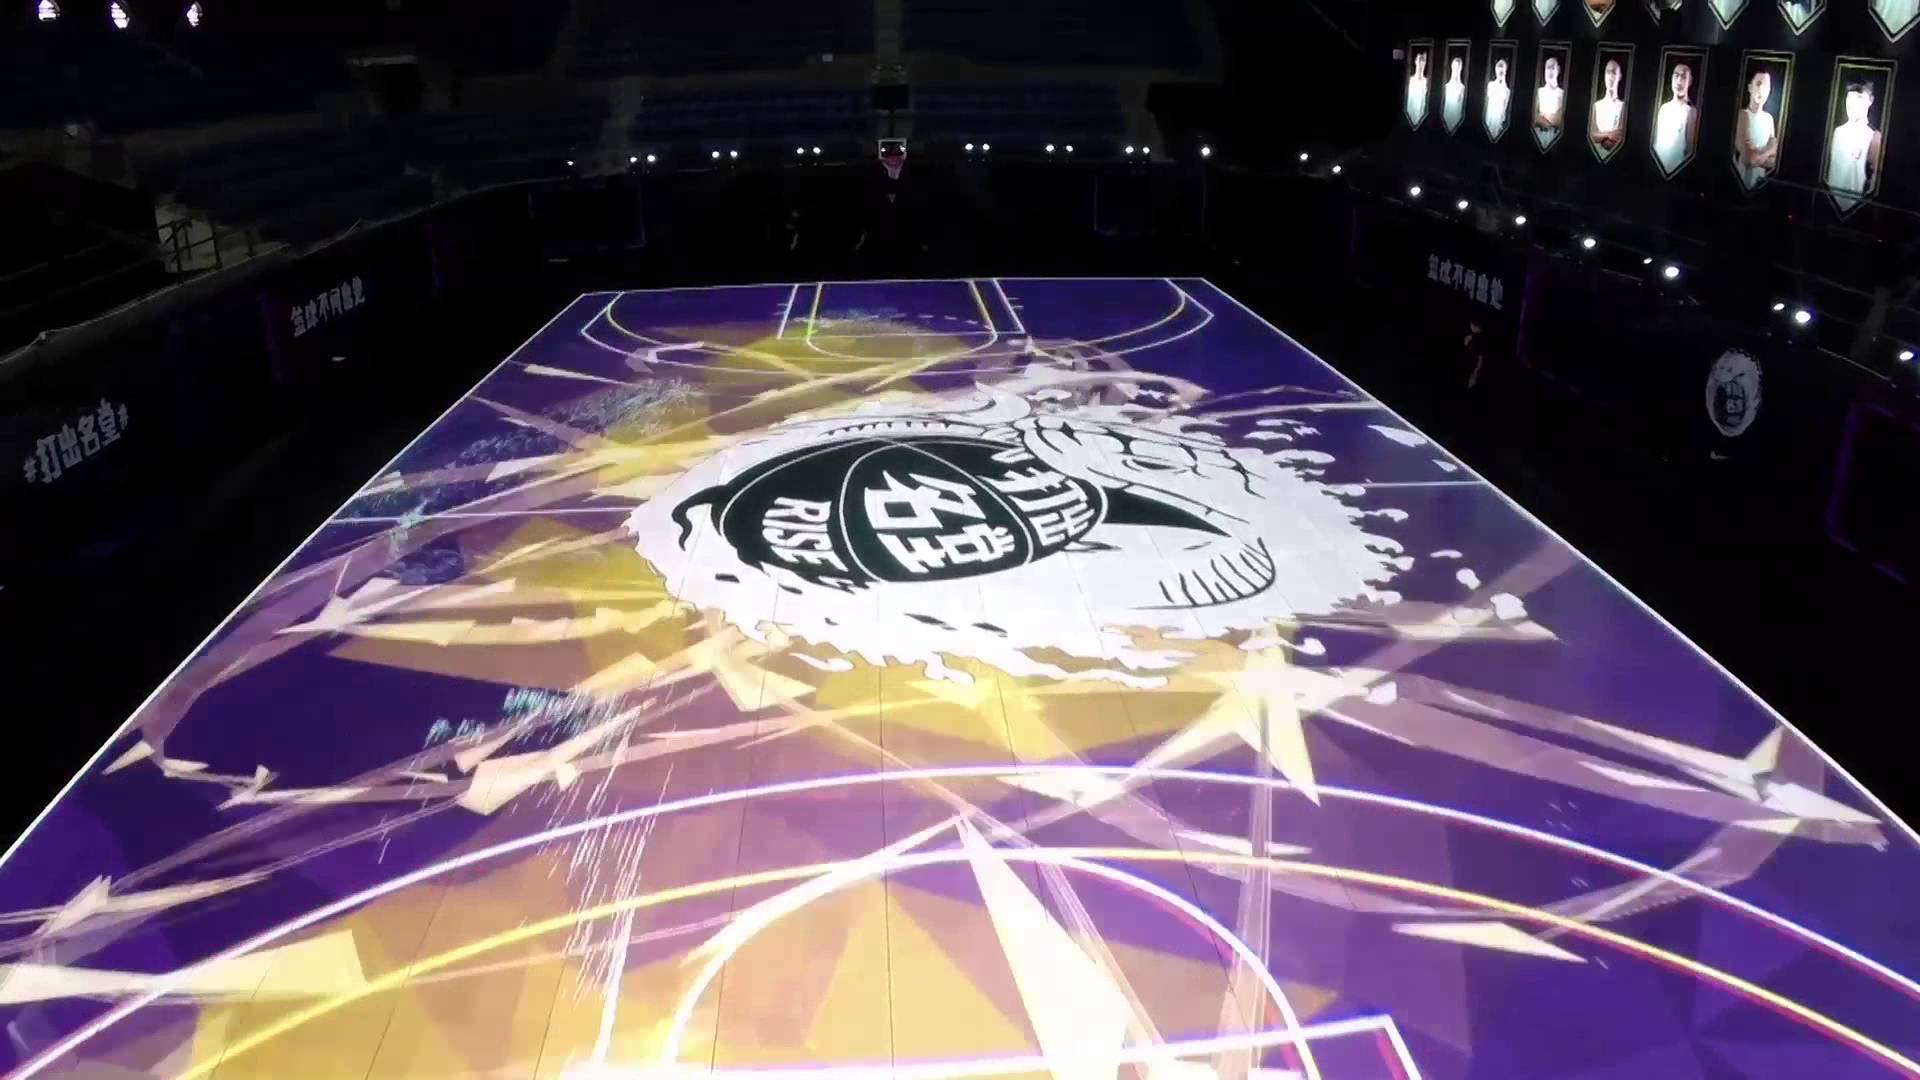 AllLED basketball court in Shanghai for Kobe Bryant created by Nike LEDs ArtTuesday